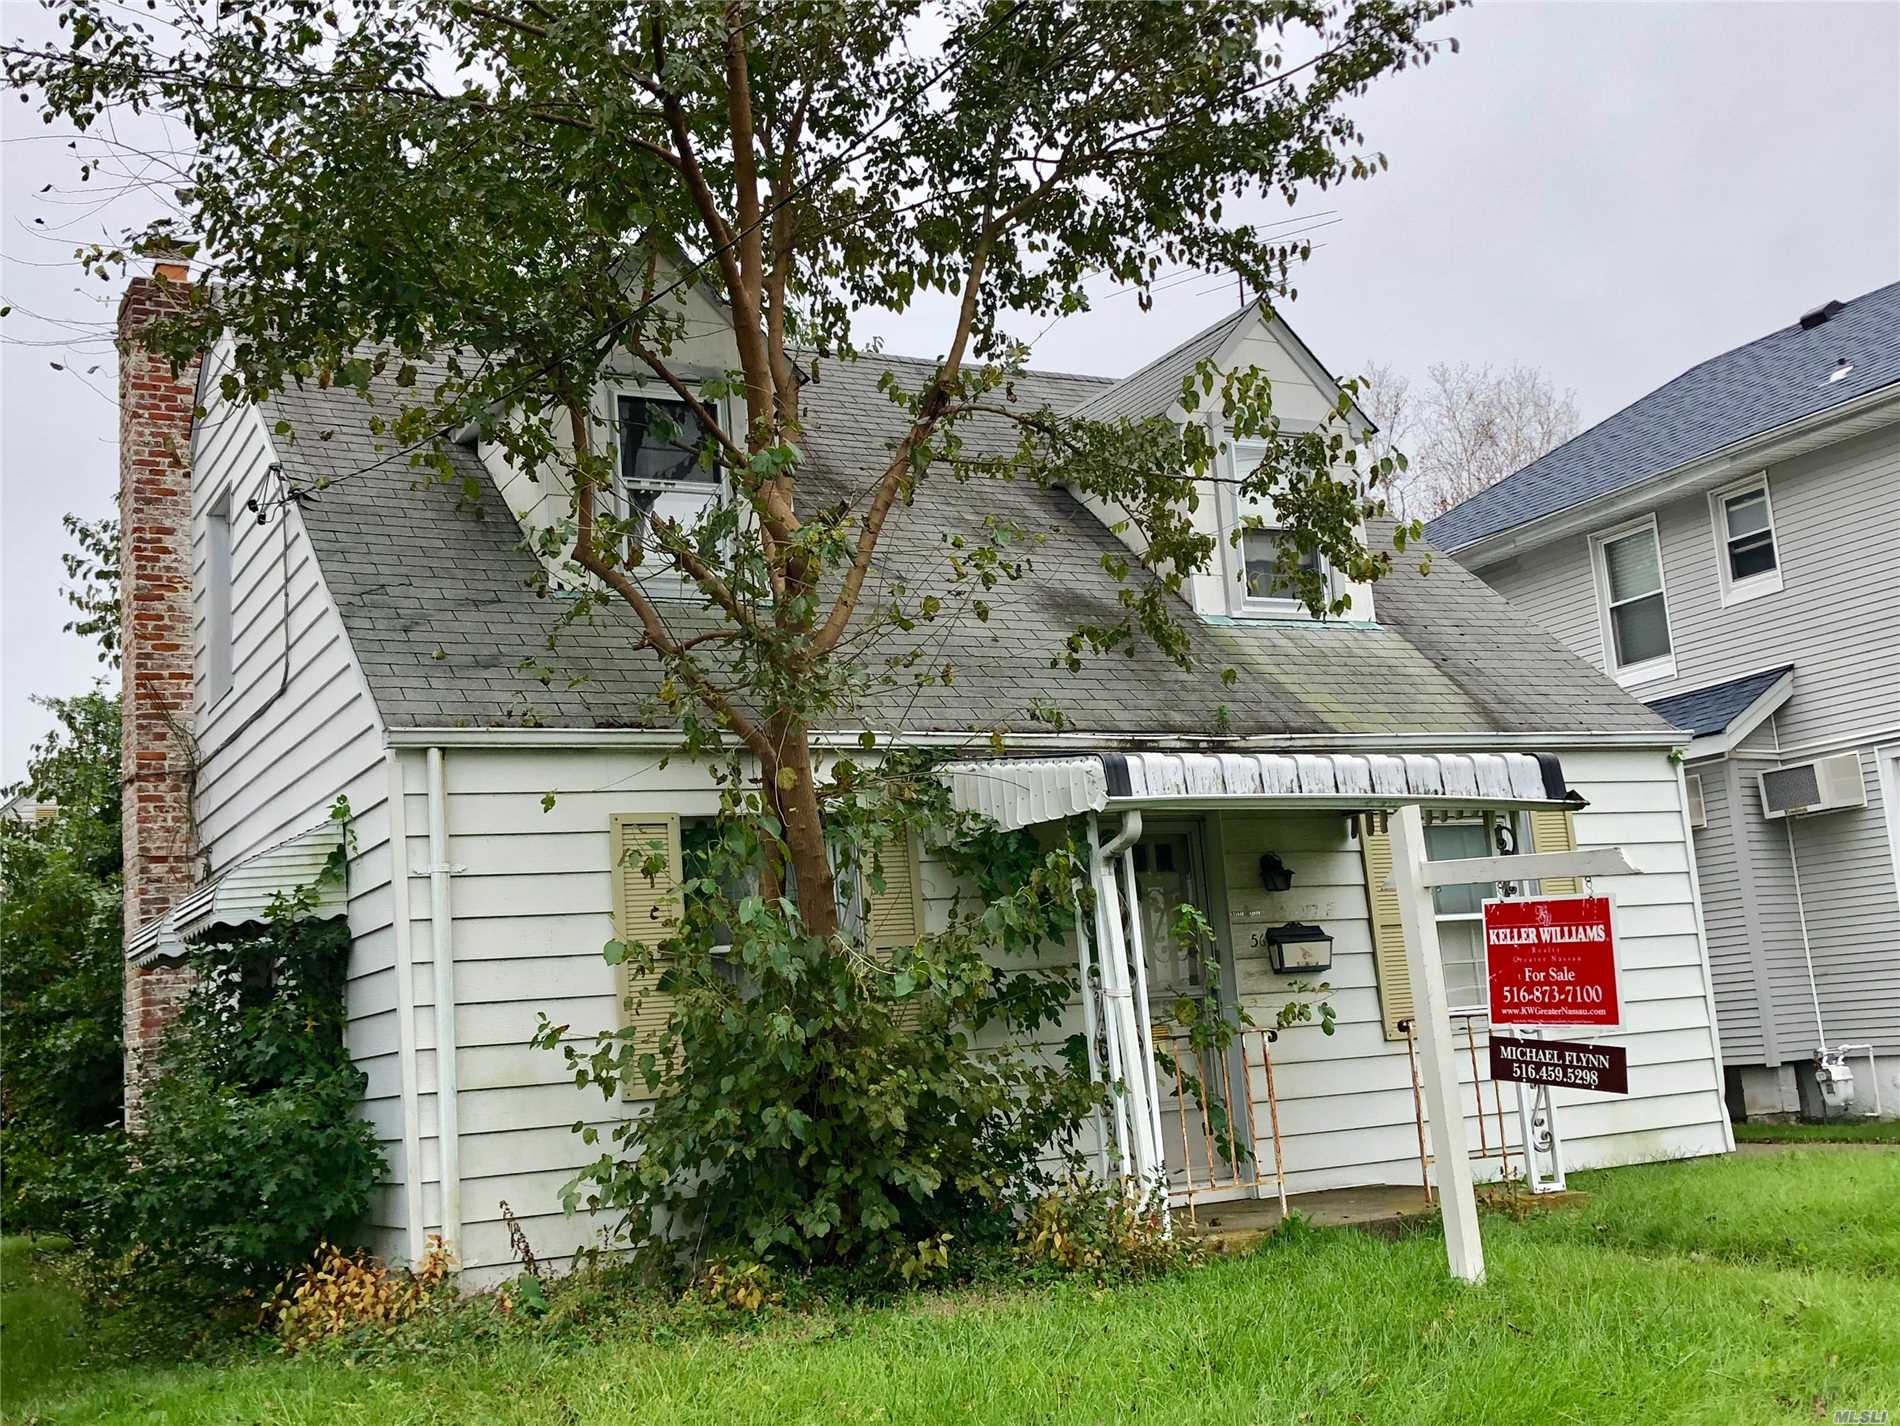 Great Opportunity To Own In Desirable Stewart Manor. Conveniently Located Near Stewart Manor And New Hyde Park Lirr Stations, & Close To All Schools And Shopping. 35 Minutes To Nyc. Property To Be Sold As-Is But Plenty Of Potential and some updates have been made! Brand New Burnham 204 water boiler and Rheem gas water heater Installed. Note Property Is Located On Stewart Ave. Between Elton Rd. And Fernwood Terr.